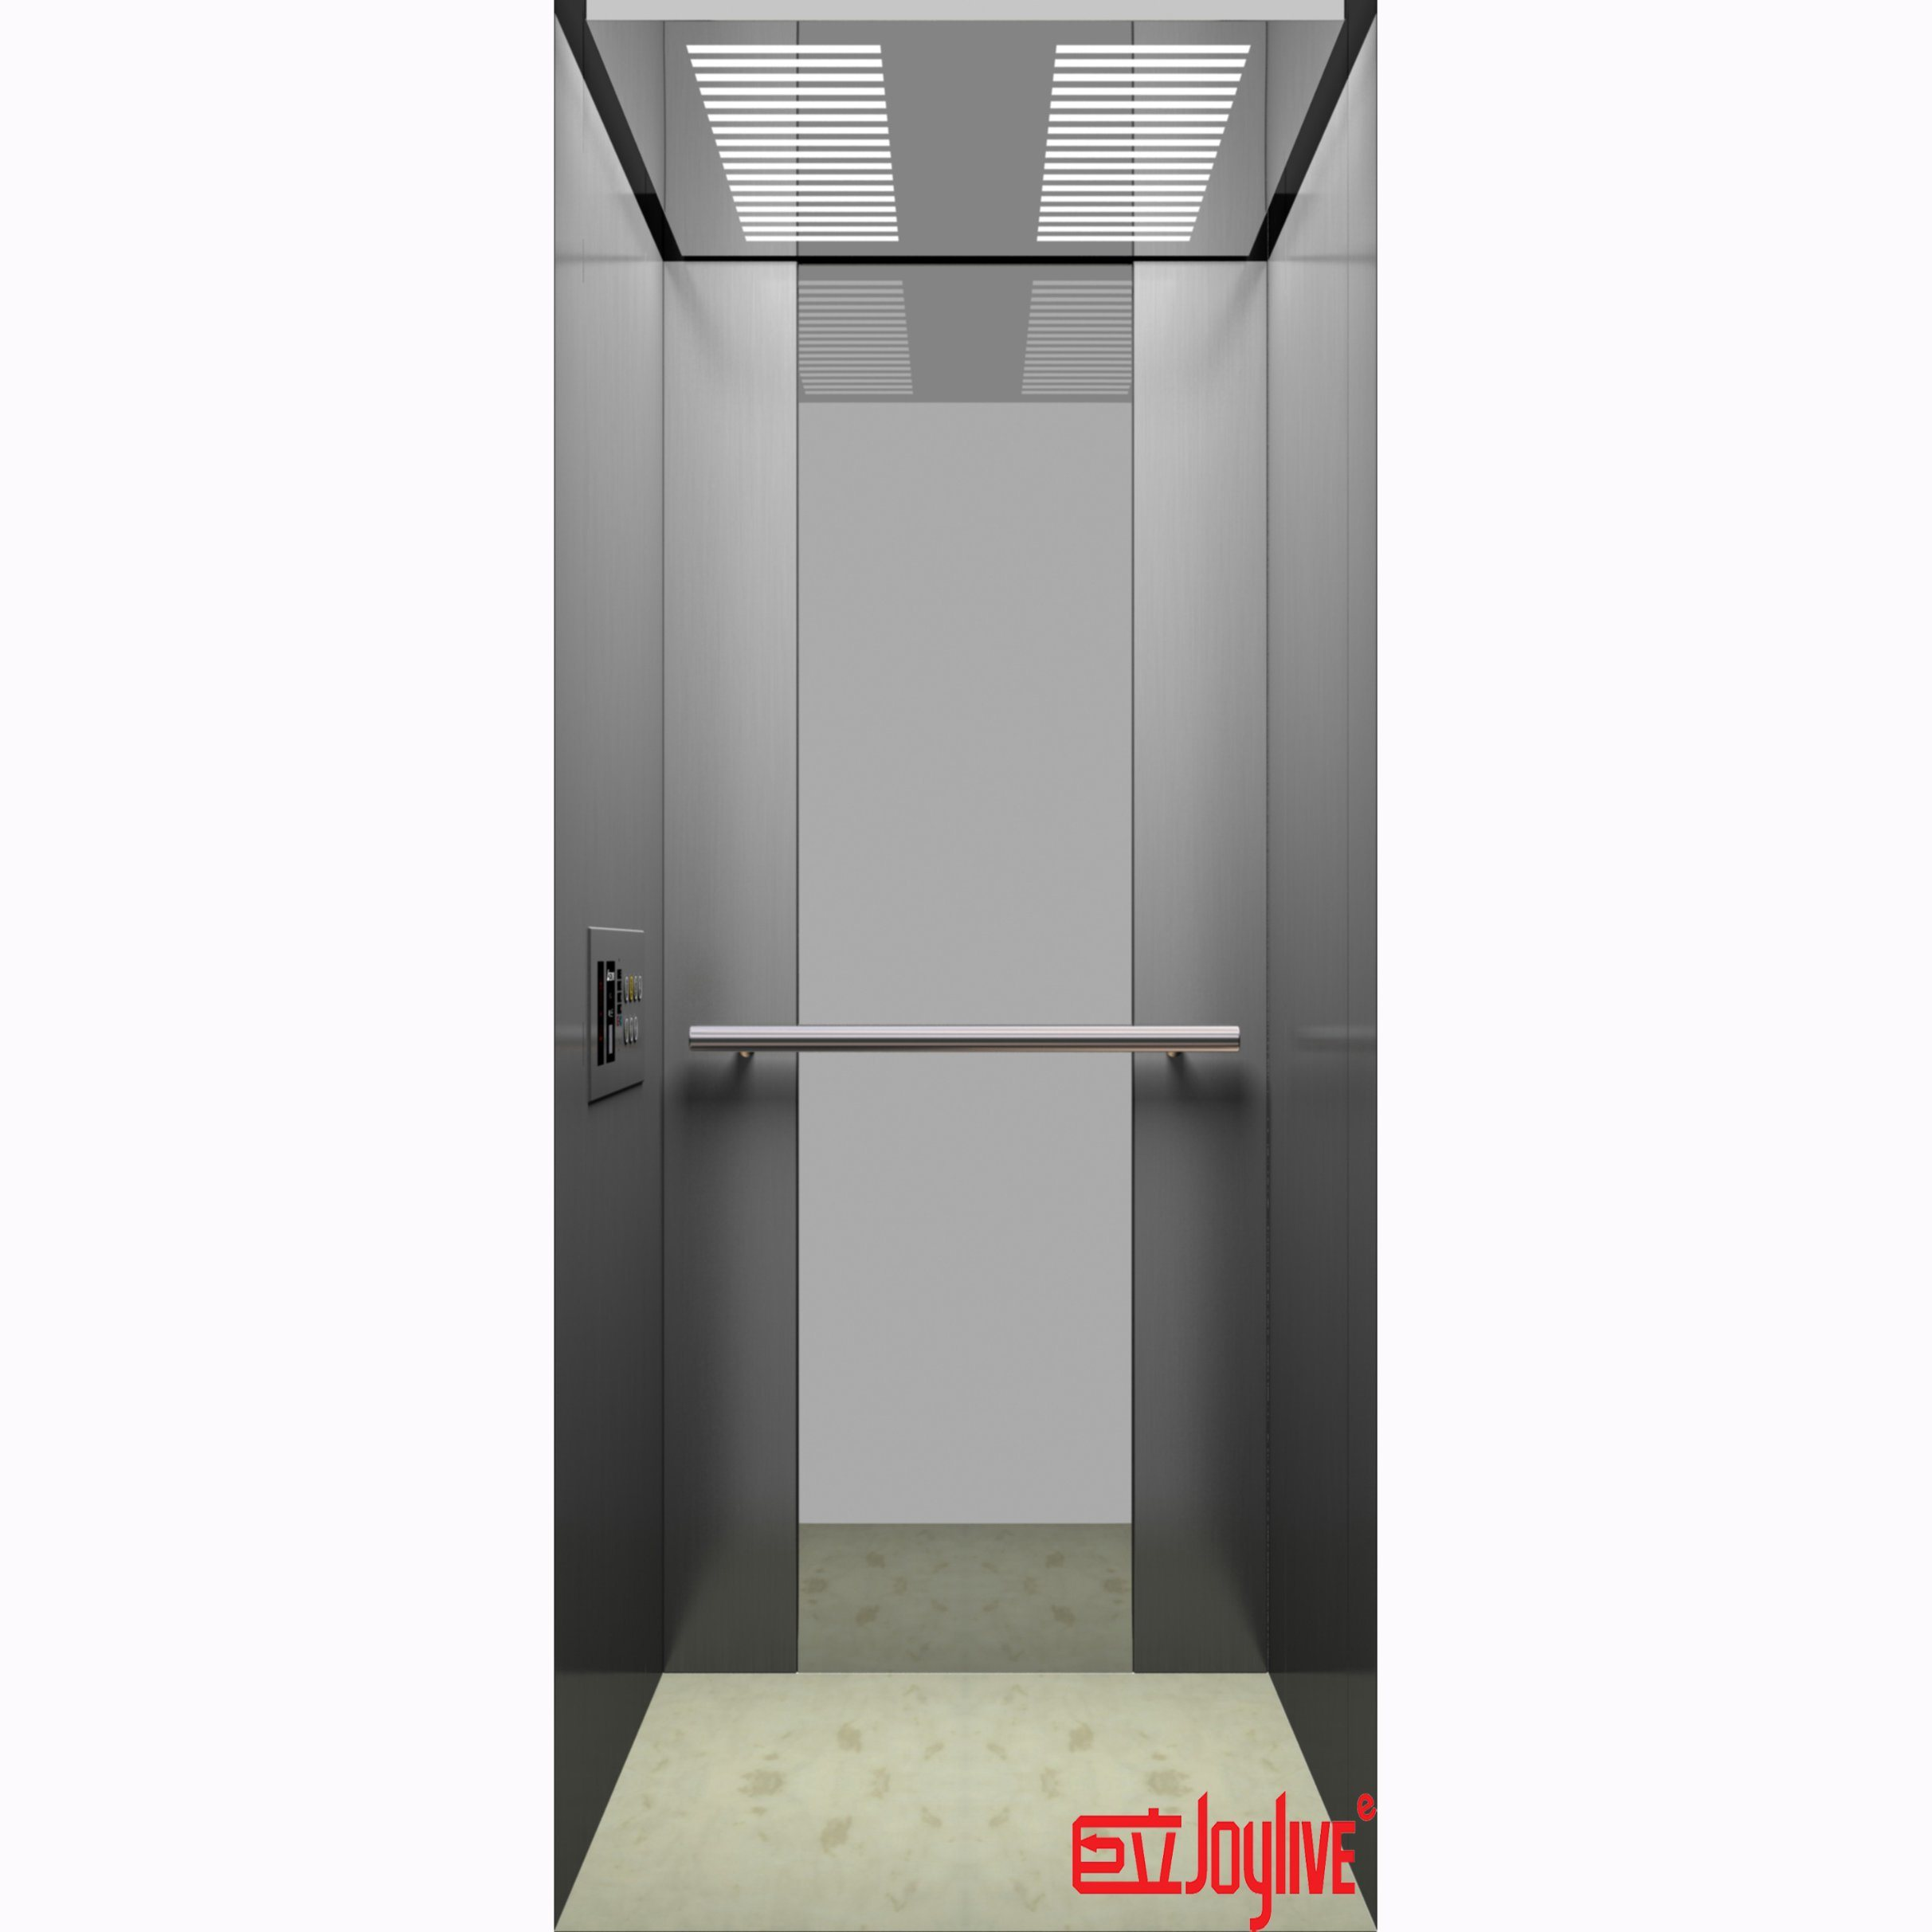 Vvvf Passenger Small Home Elevator with Price